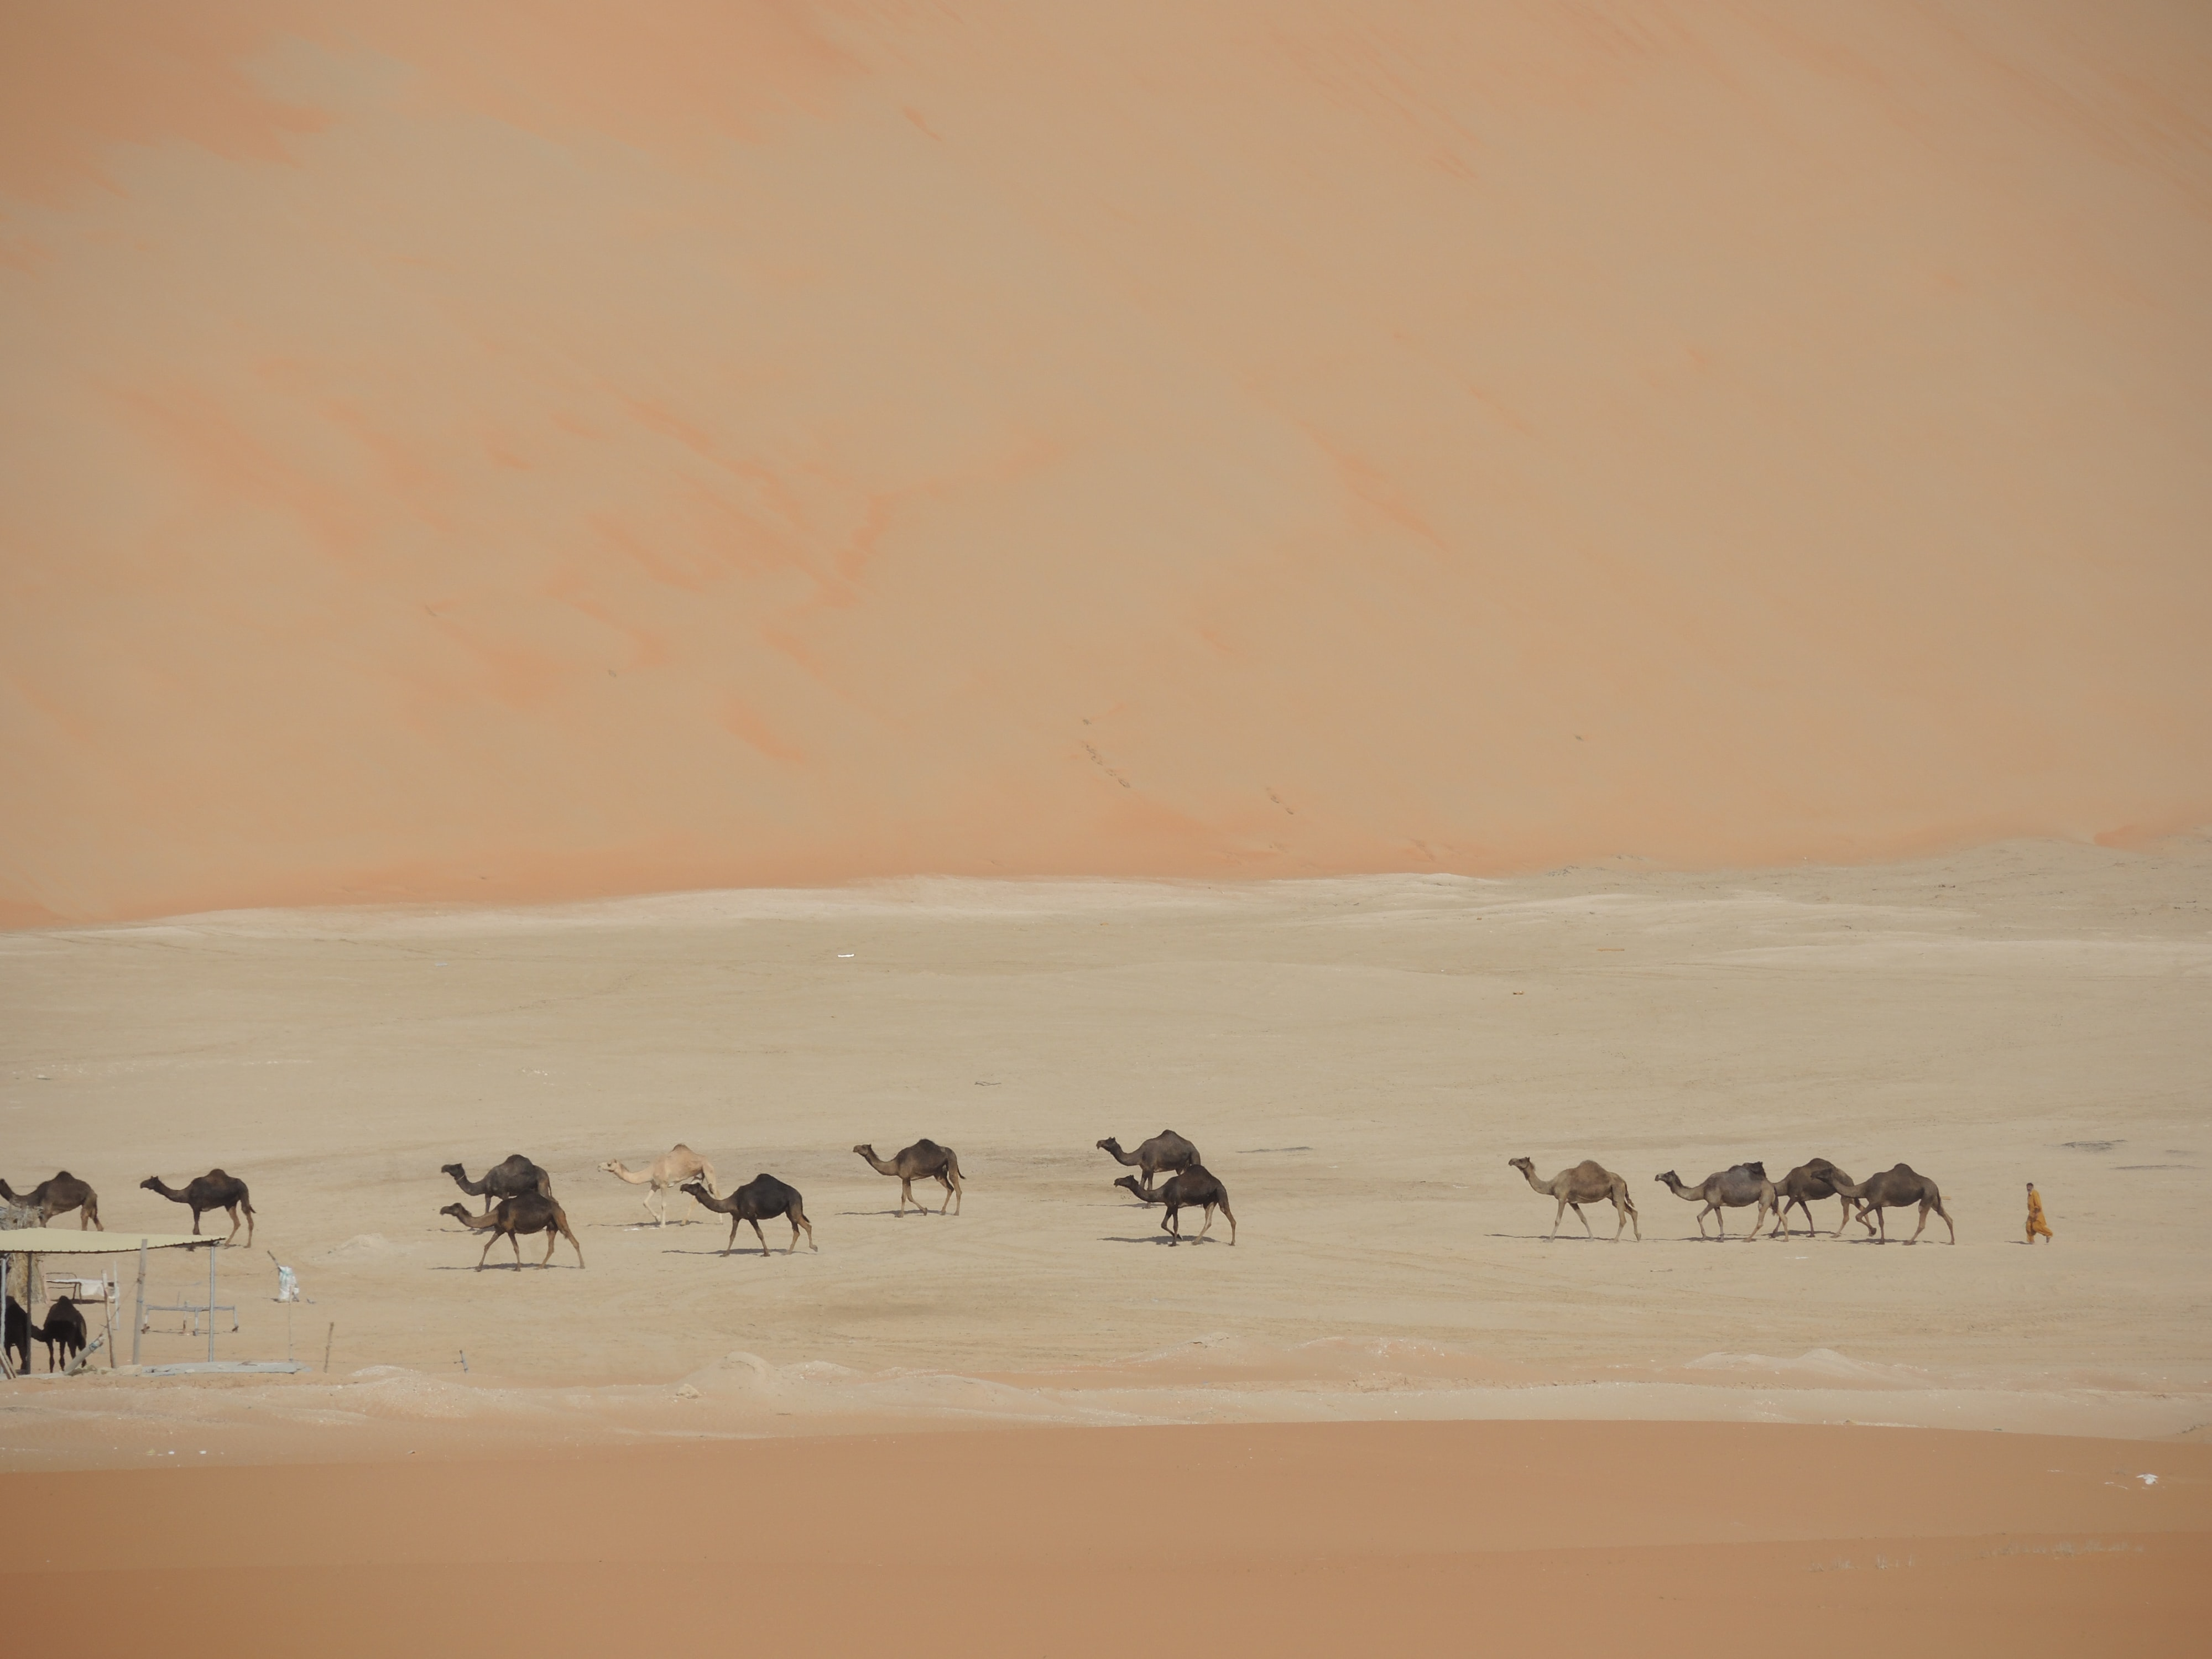 A herd of camels walking through a stream of water in the desert.